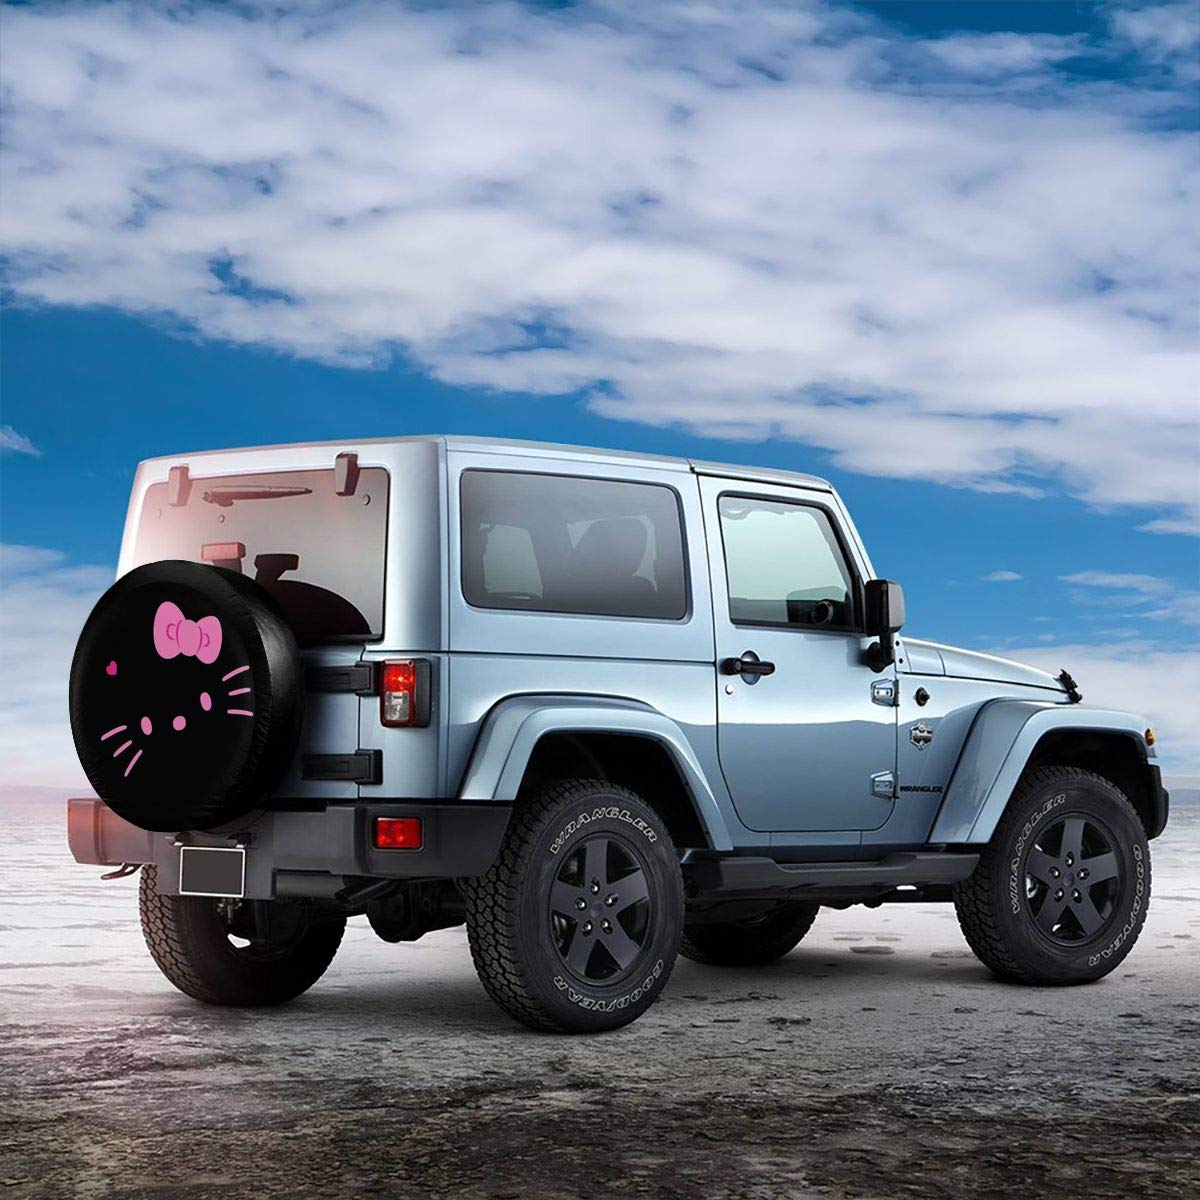 Spare Tire Cover Hello Kitty Universal Waterproof Dust-Proof Wheel Covers